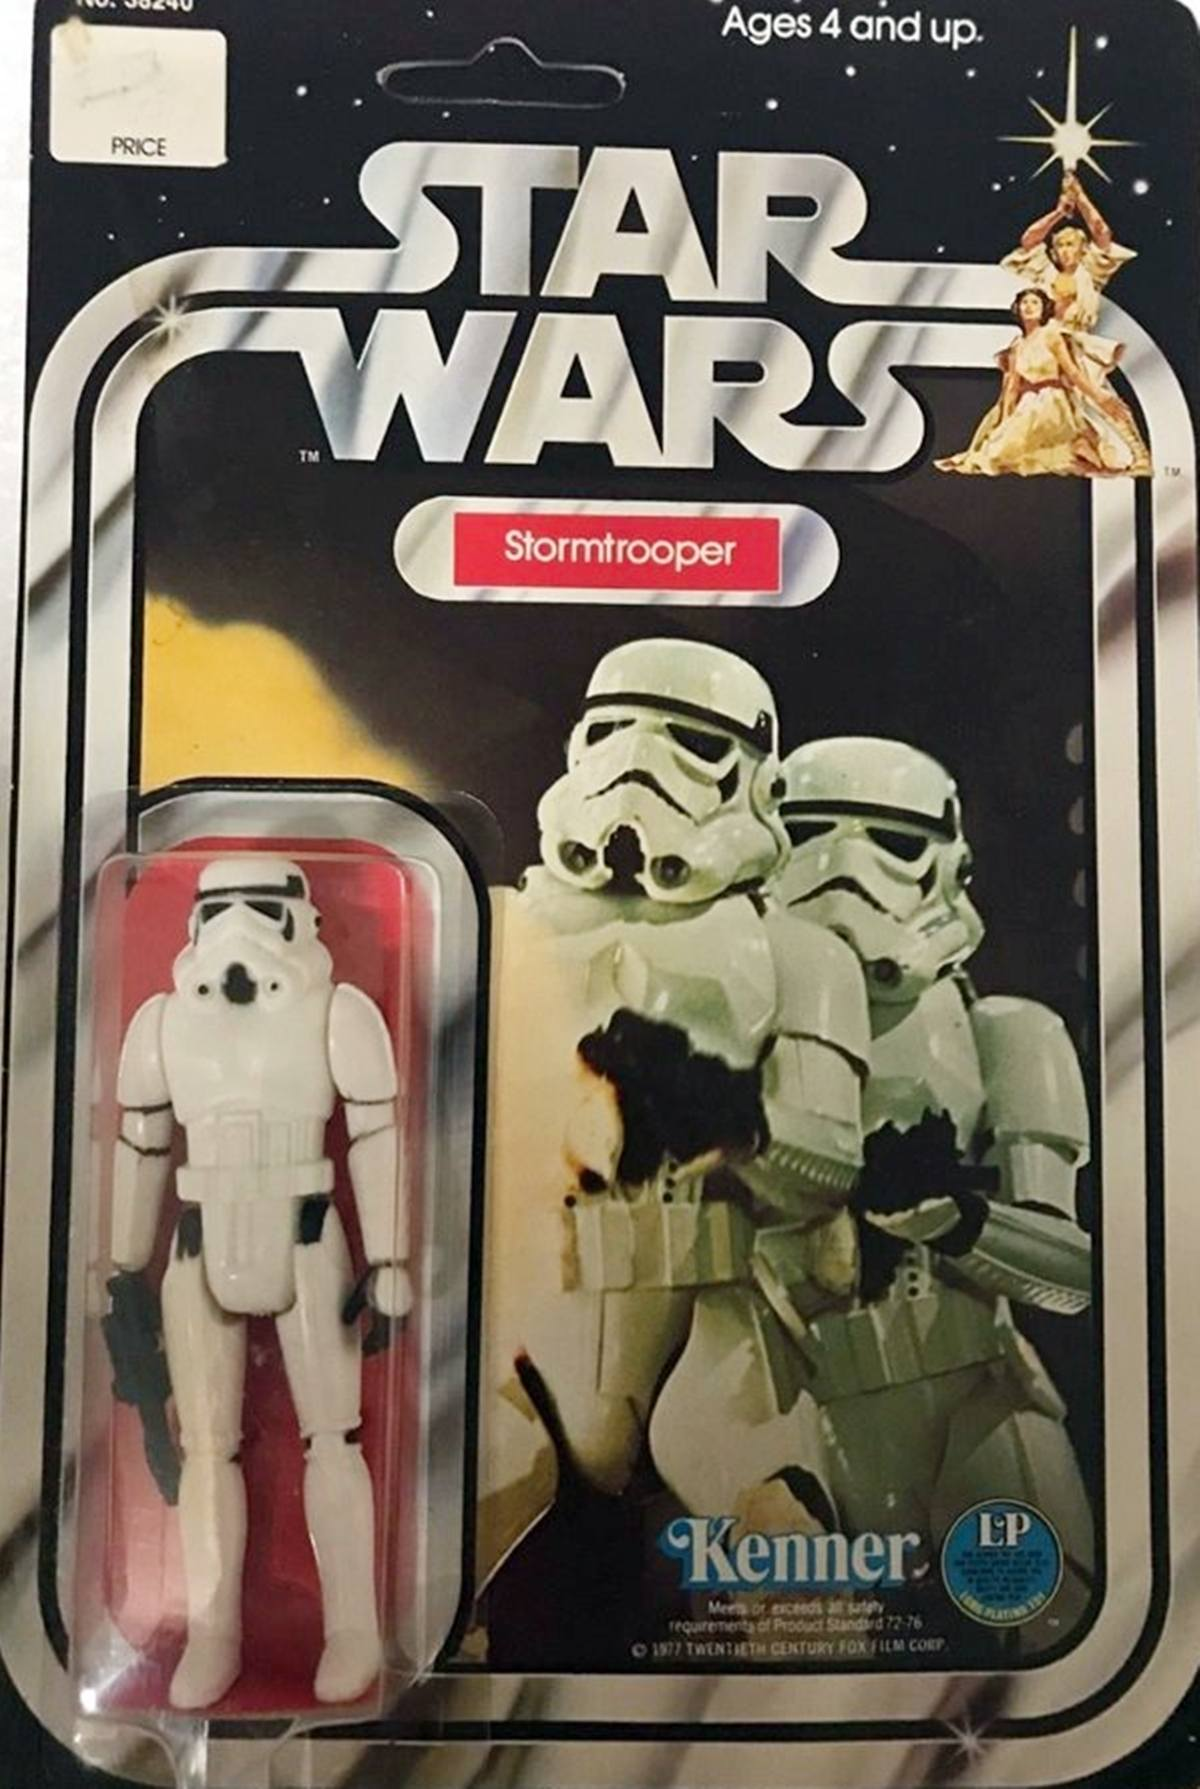 1 13 10 Star Wars Toys That Will Earn You A Fortune!